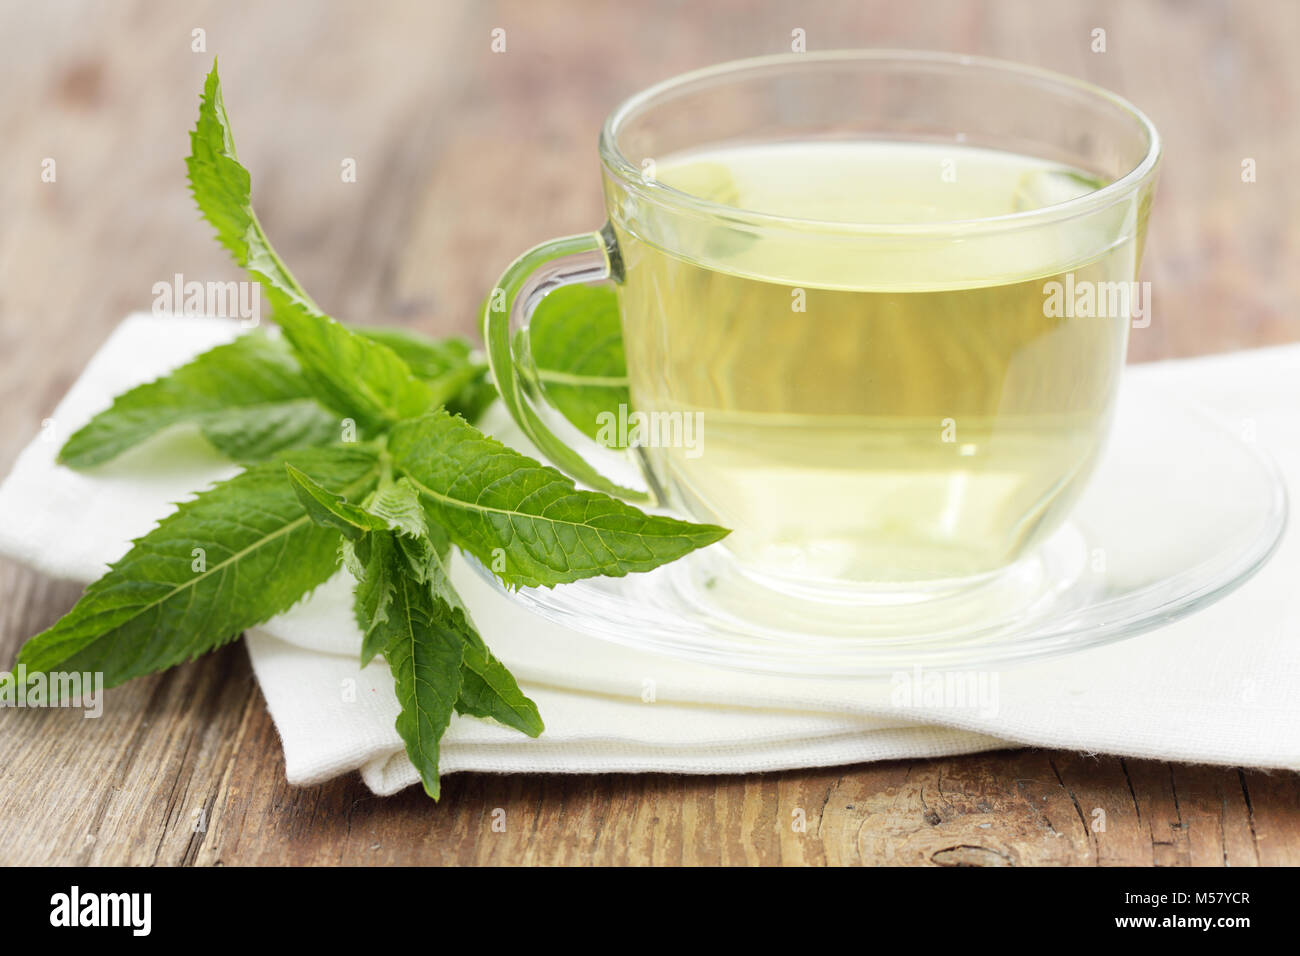 Cup with mint tea and a peppermint - Stock Image